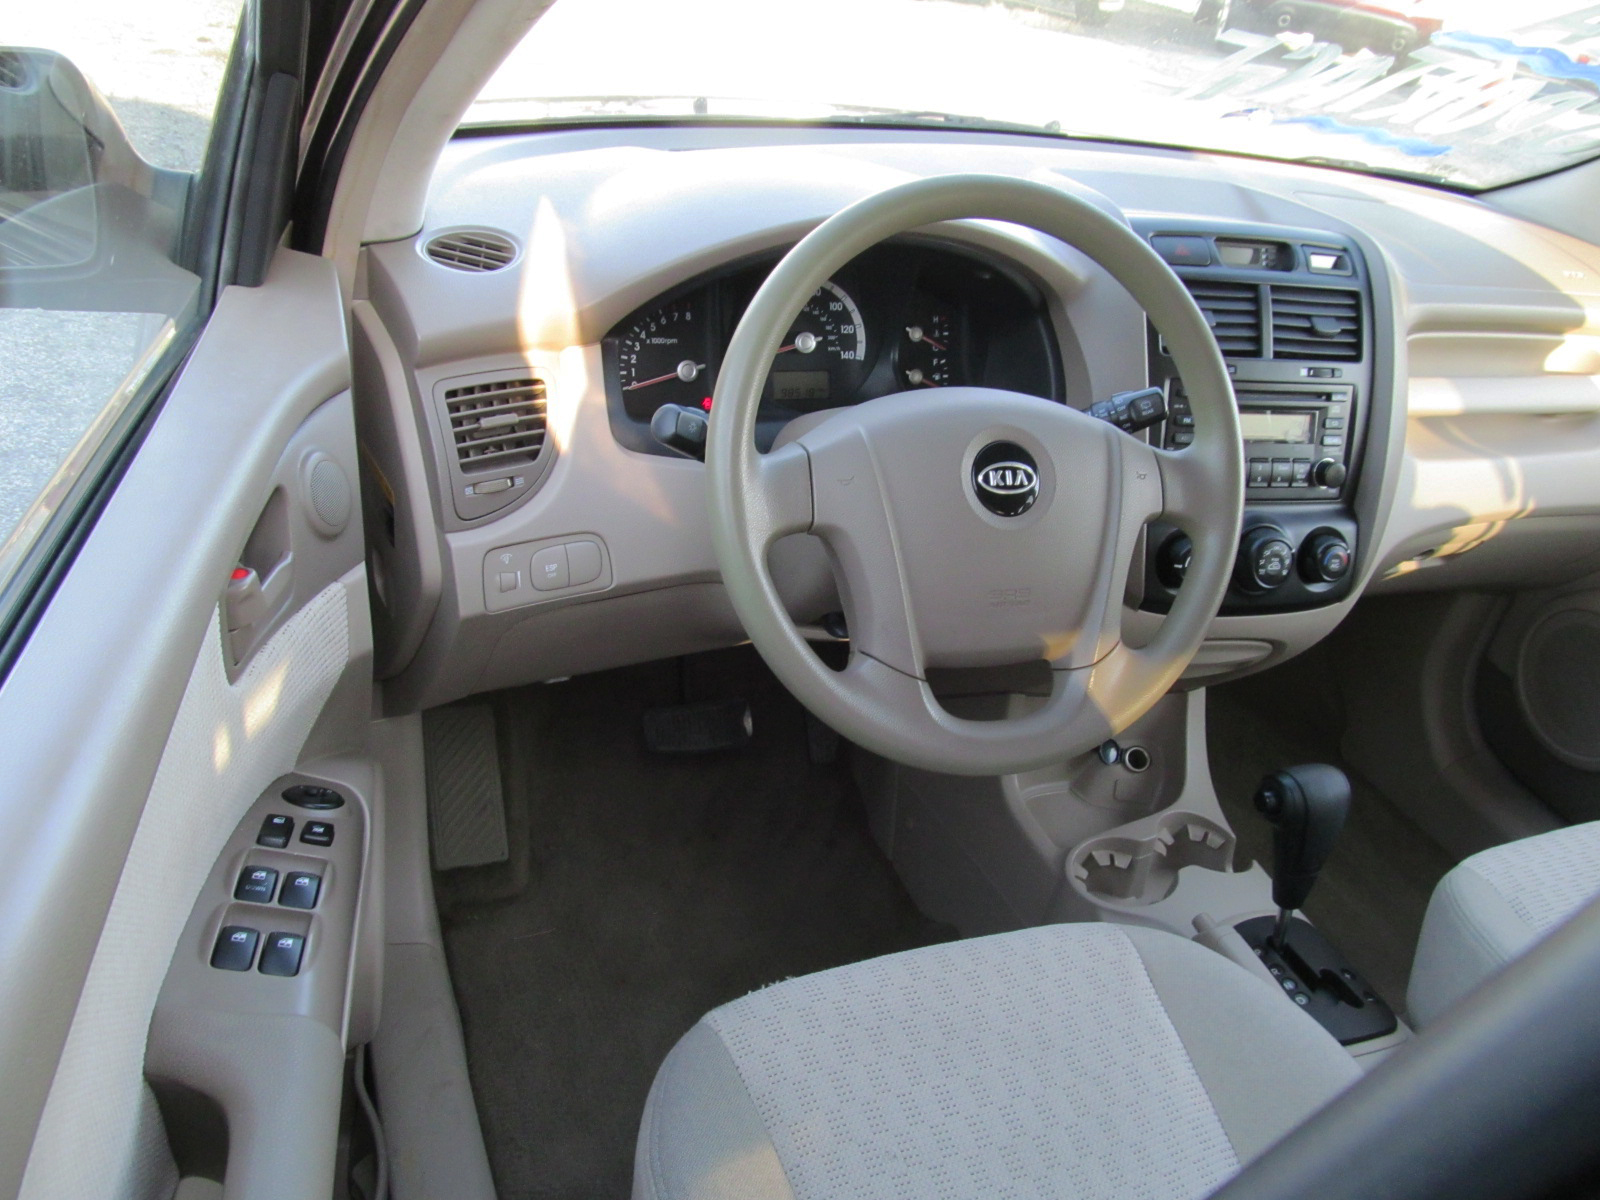 2005 kia sportage pictures cargurus. Black Bedroom Furniture Sets. Home Design Ideas